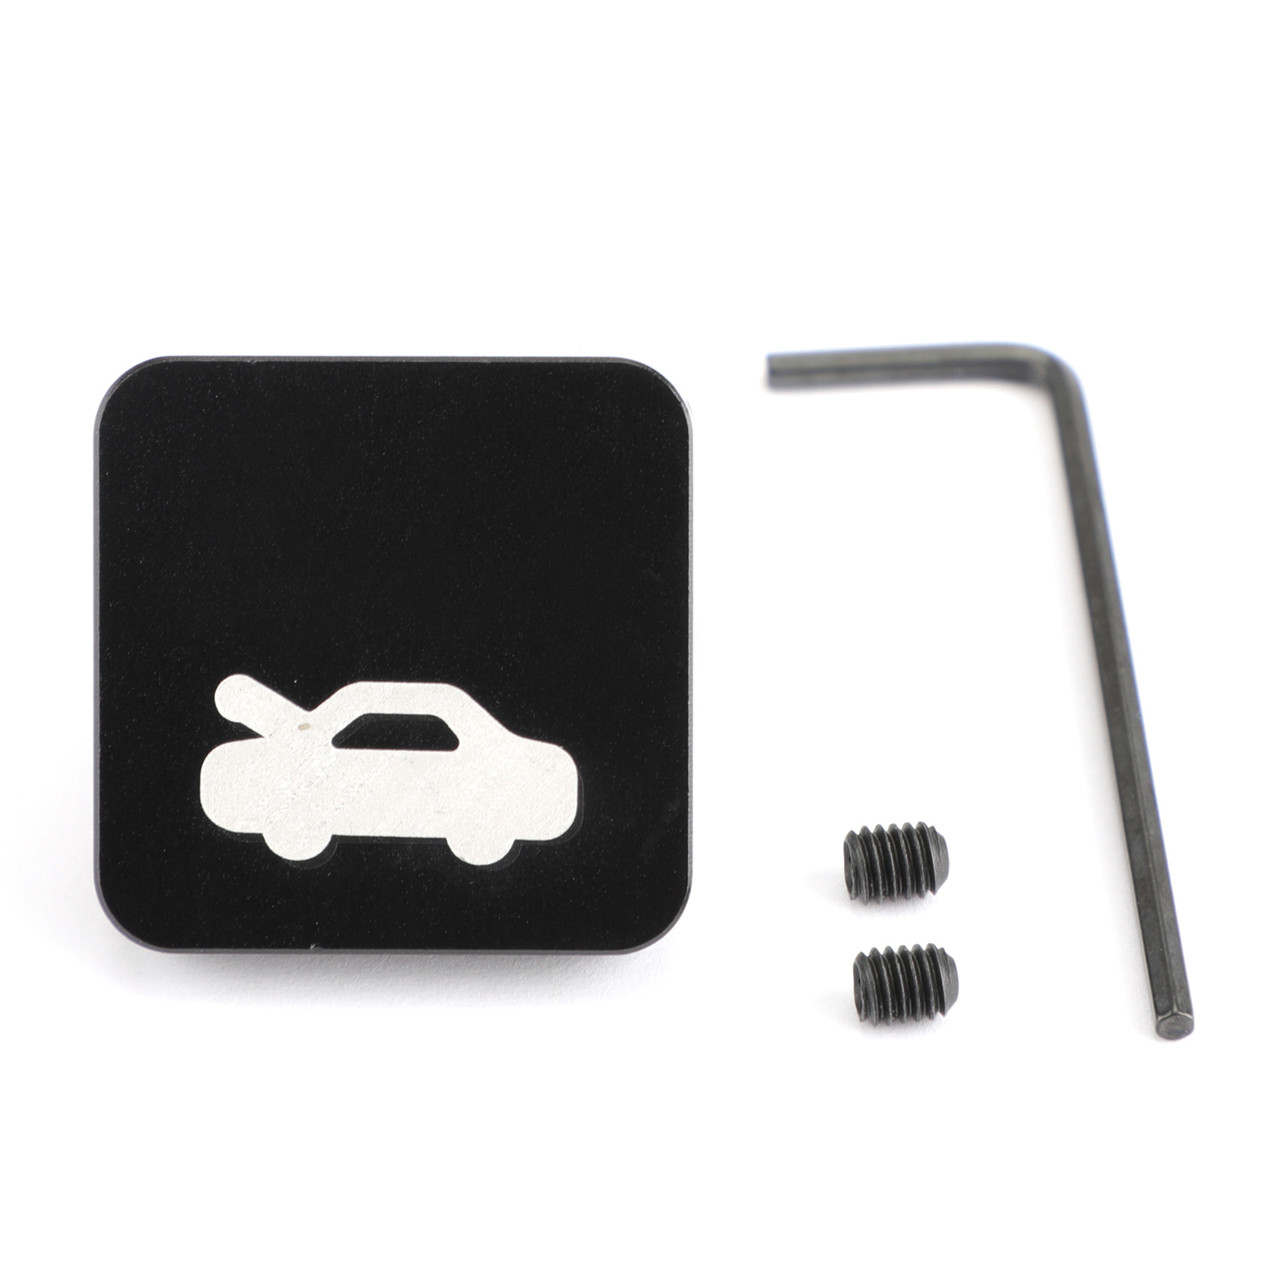 Hood Release Latch Handle Repair Kit For Honda Civic 1996-2011